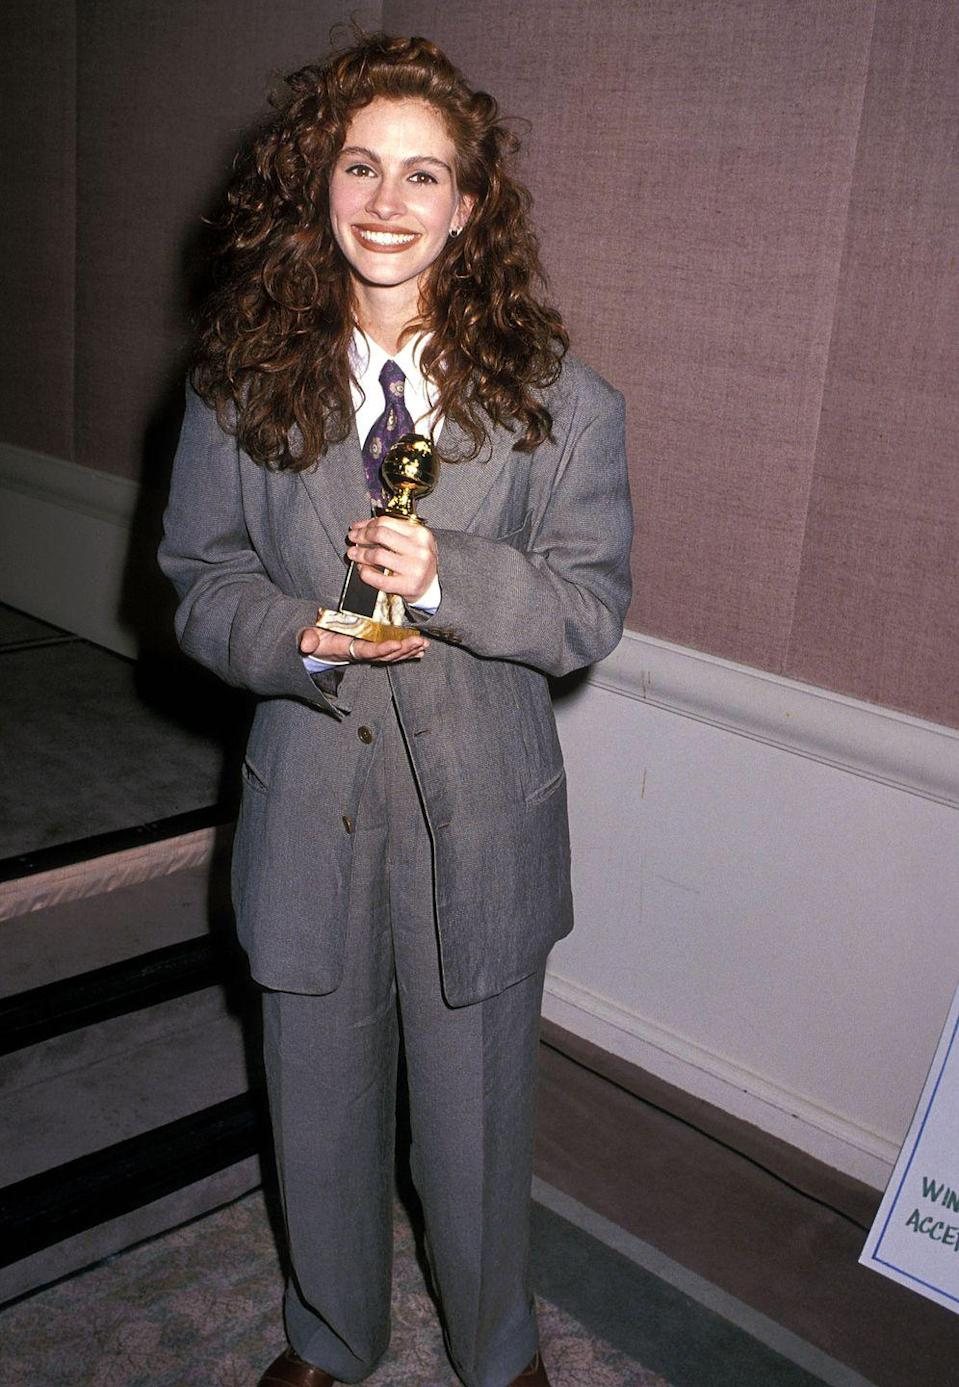 <p>This <em>Pretty Woman</em> wore an oversize Giorgio Armani suit, complete with a tie, to the Golden Globes ceremony in 1990...</p>